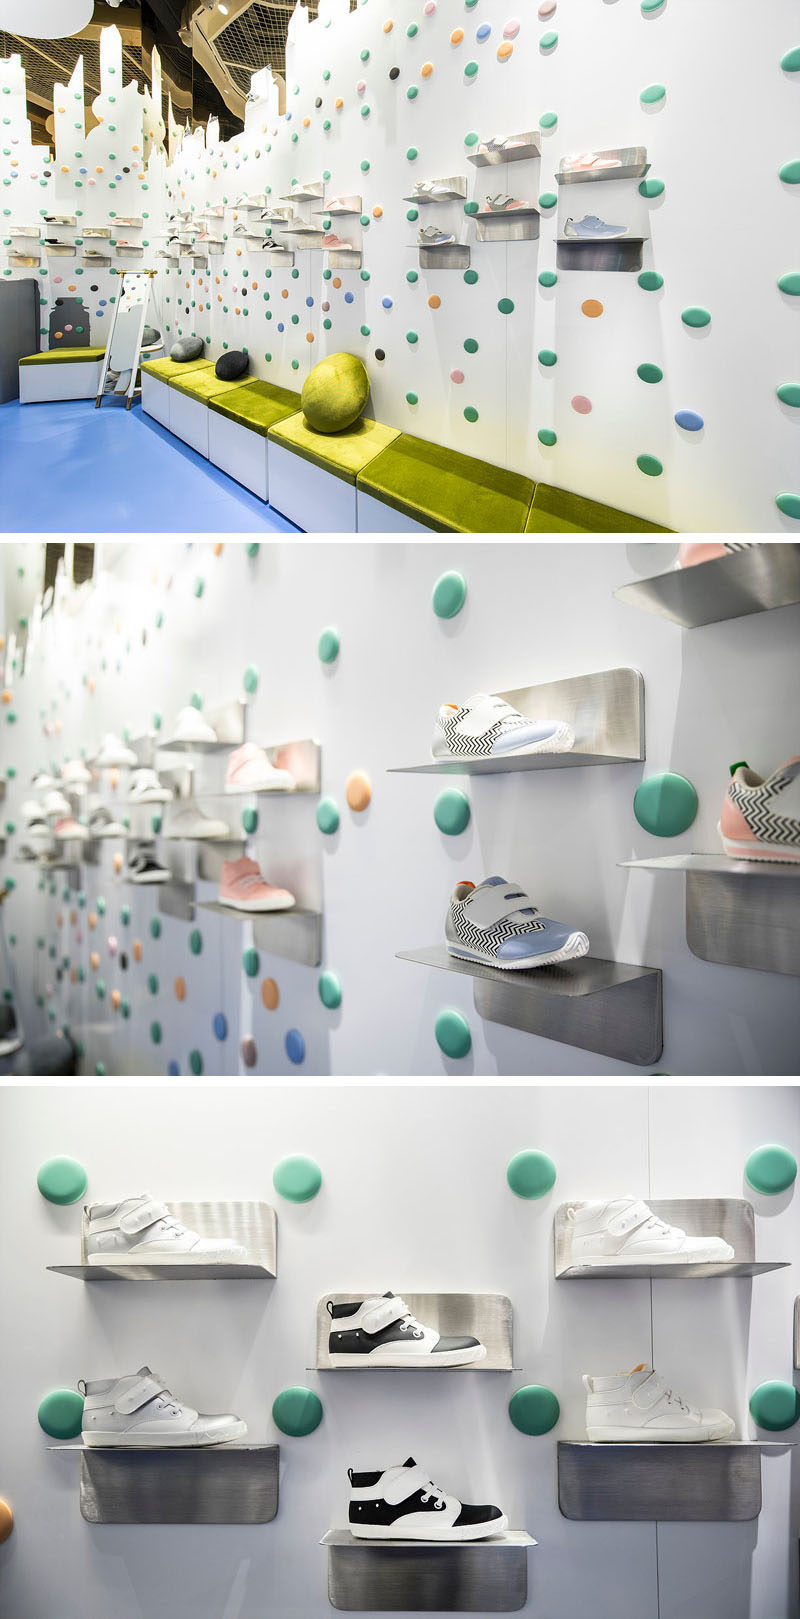 """In this modern kid's shoe store, metal display shelves in the shape of an """"L"""" are attached to the wall above a bench with a bright green cushion. #Shelving #ShoeStore #RetailDesign #InteriorDesign #StoreDesign"""